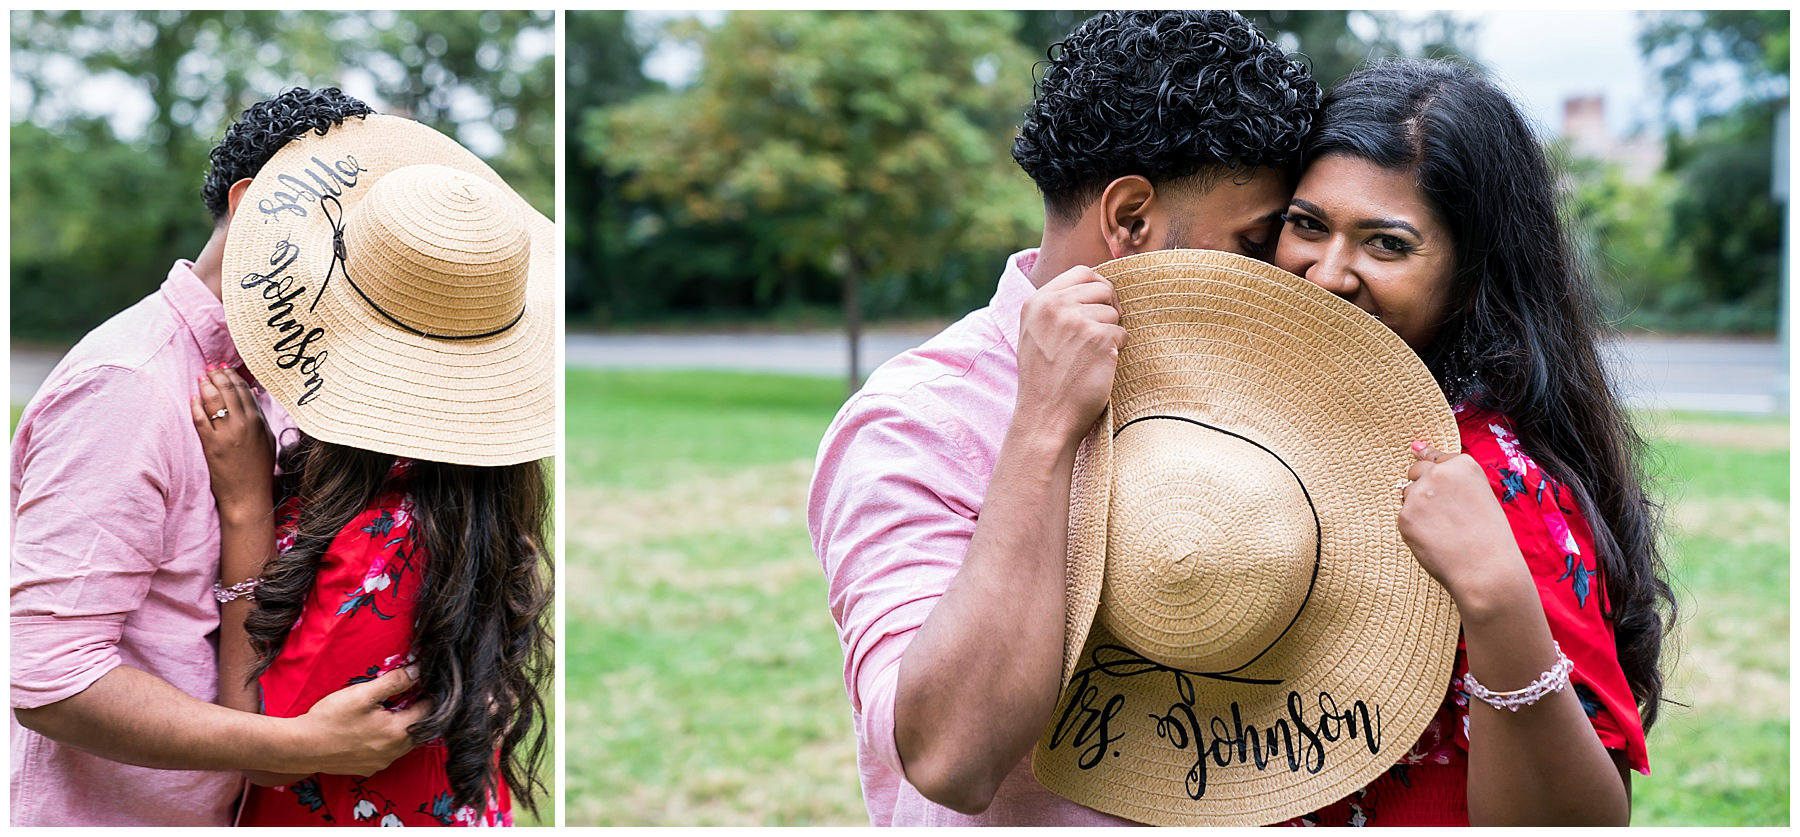 fort-tysons-park-new-york-engagement-shoot-sibyl-jithin-18.jpg